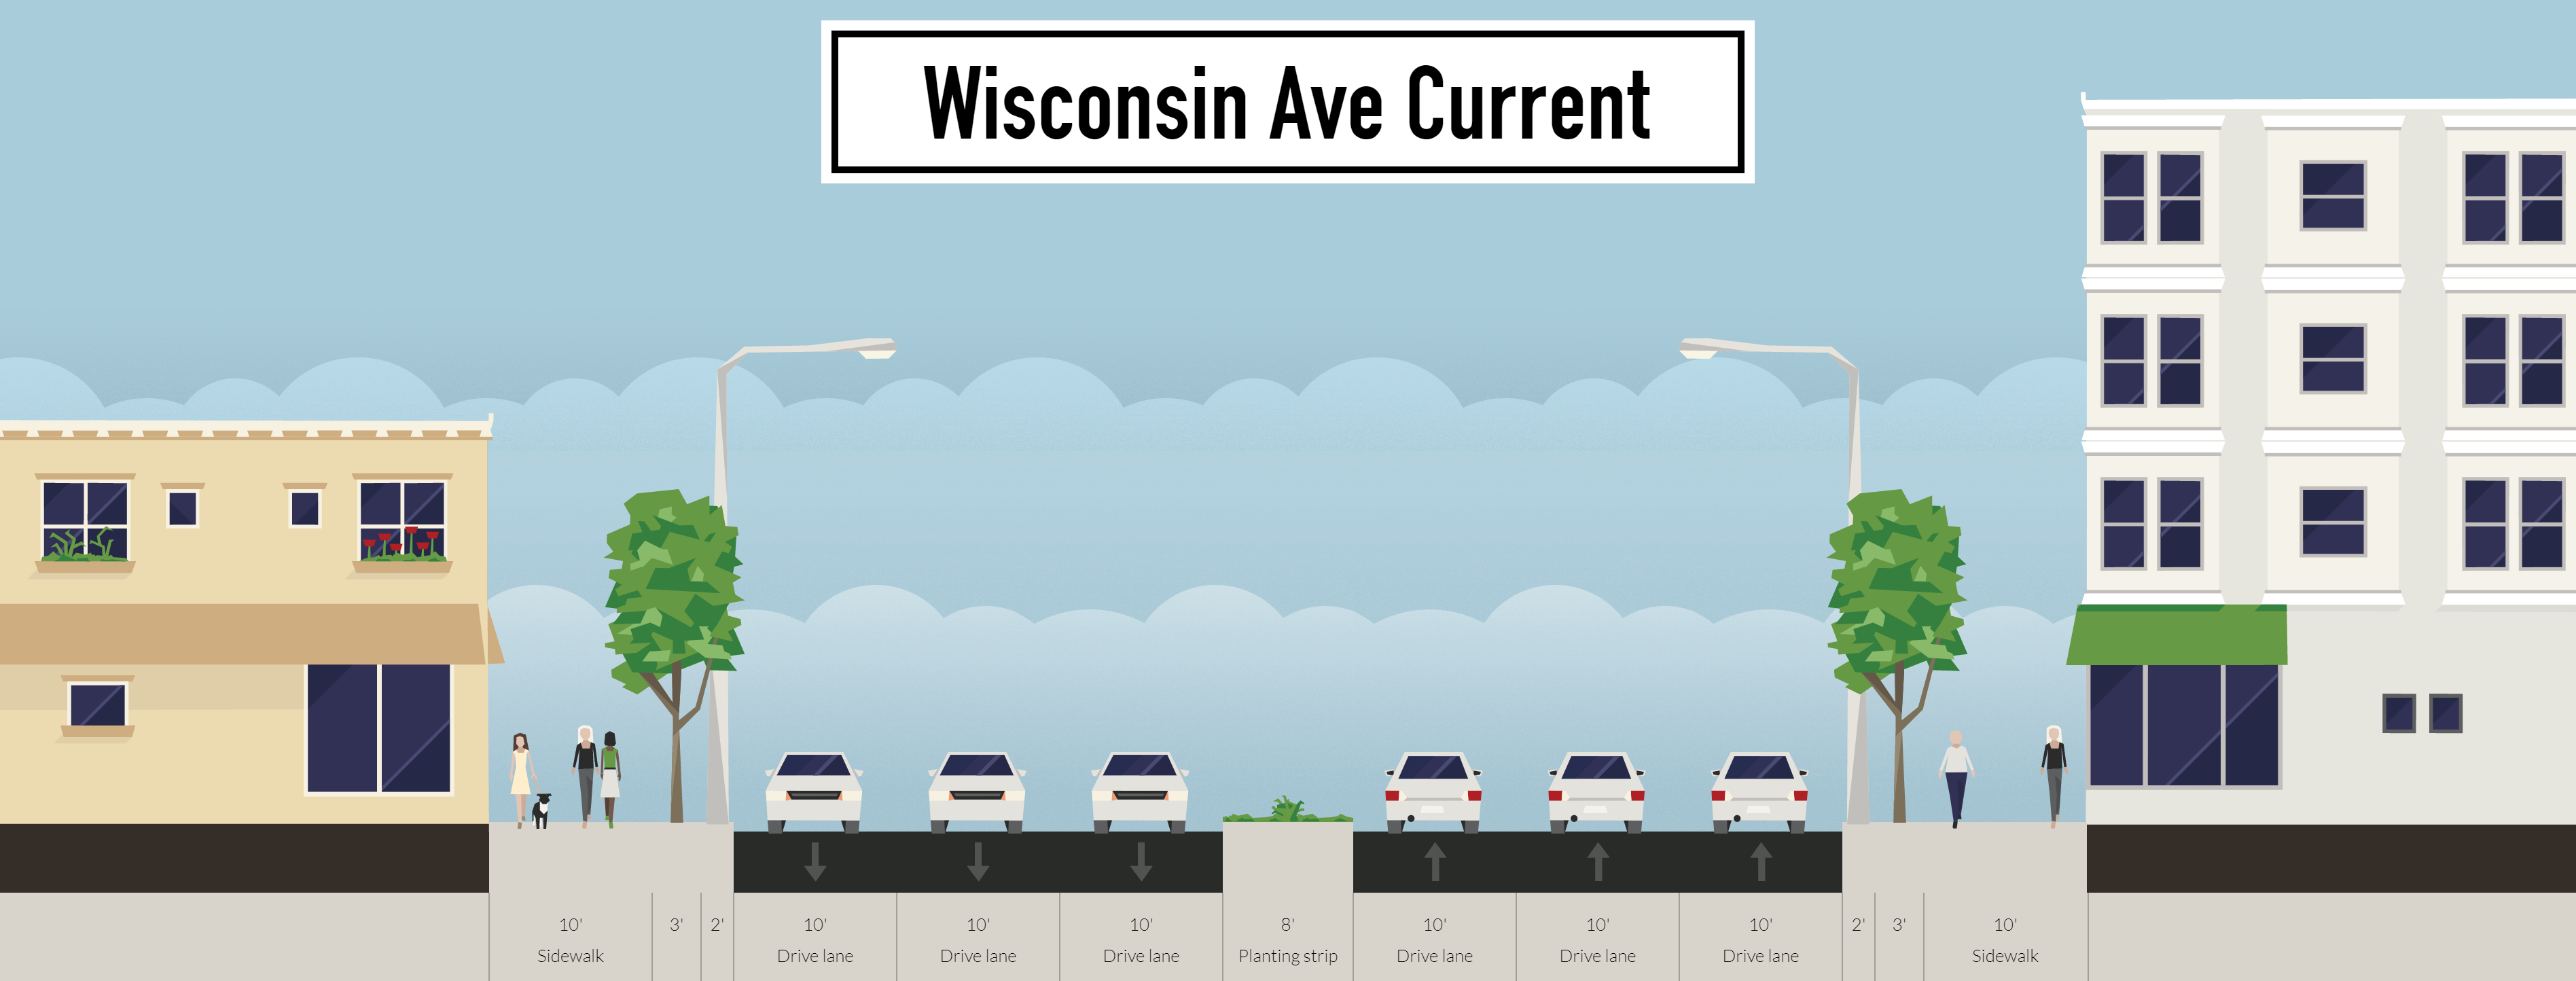 Wisconsin Avenue Current